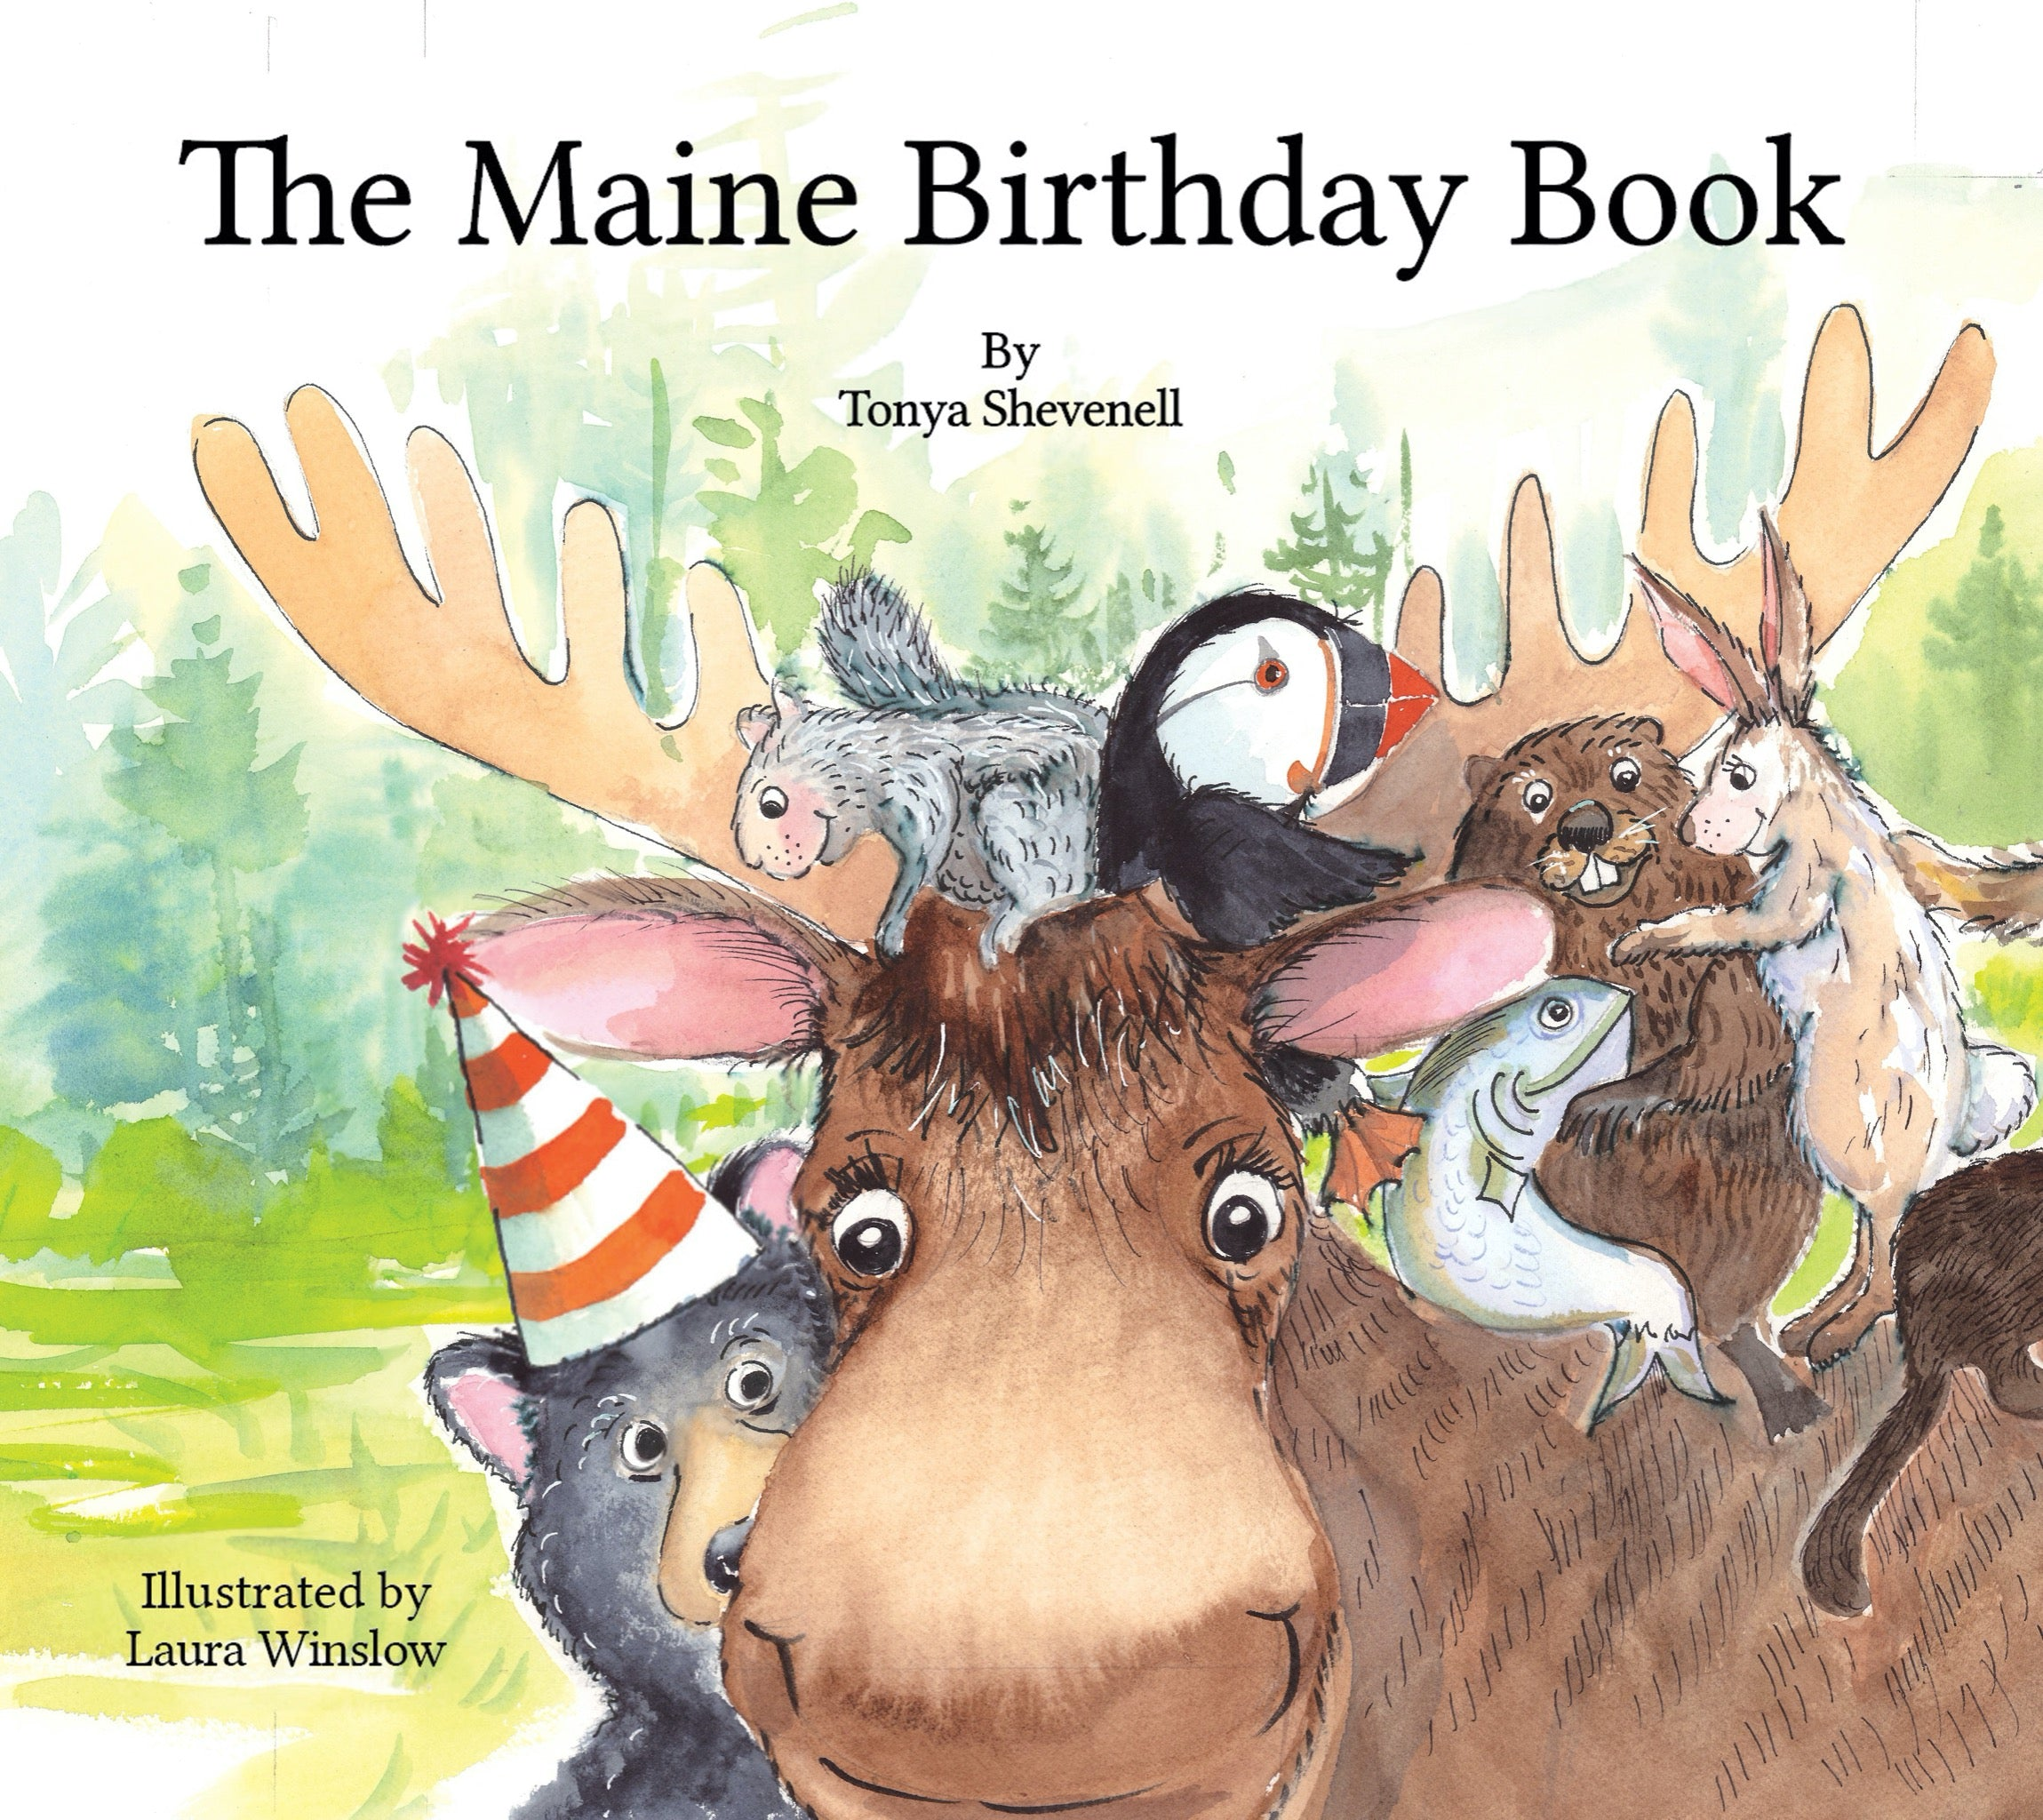 WINTER SPECIAL! An 8-Book Bundle of The Maine Birthday Book